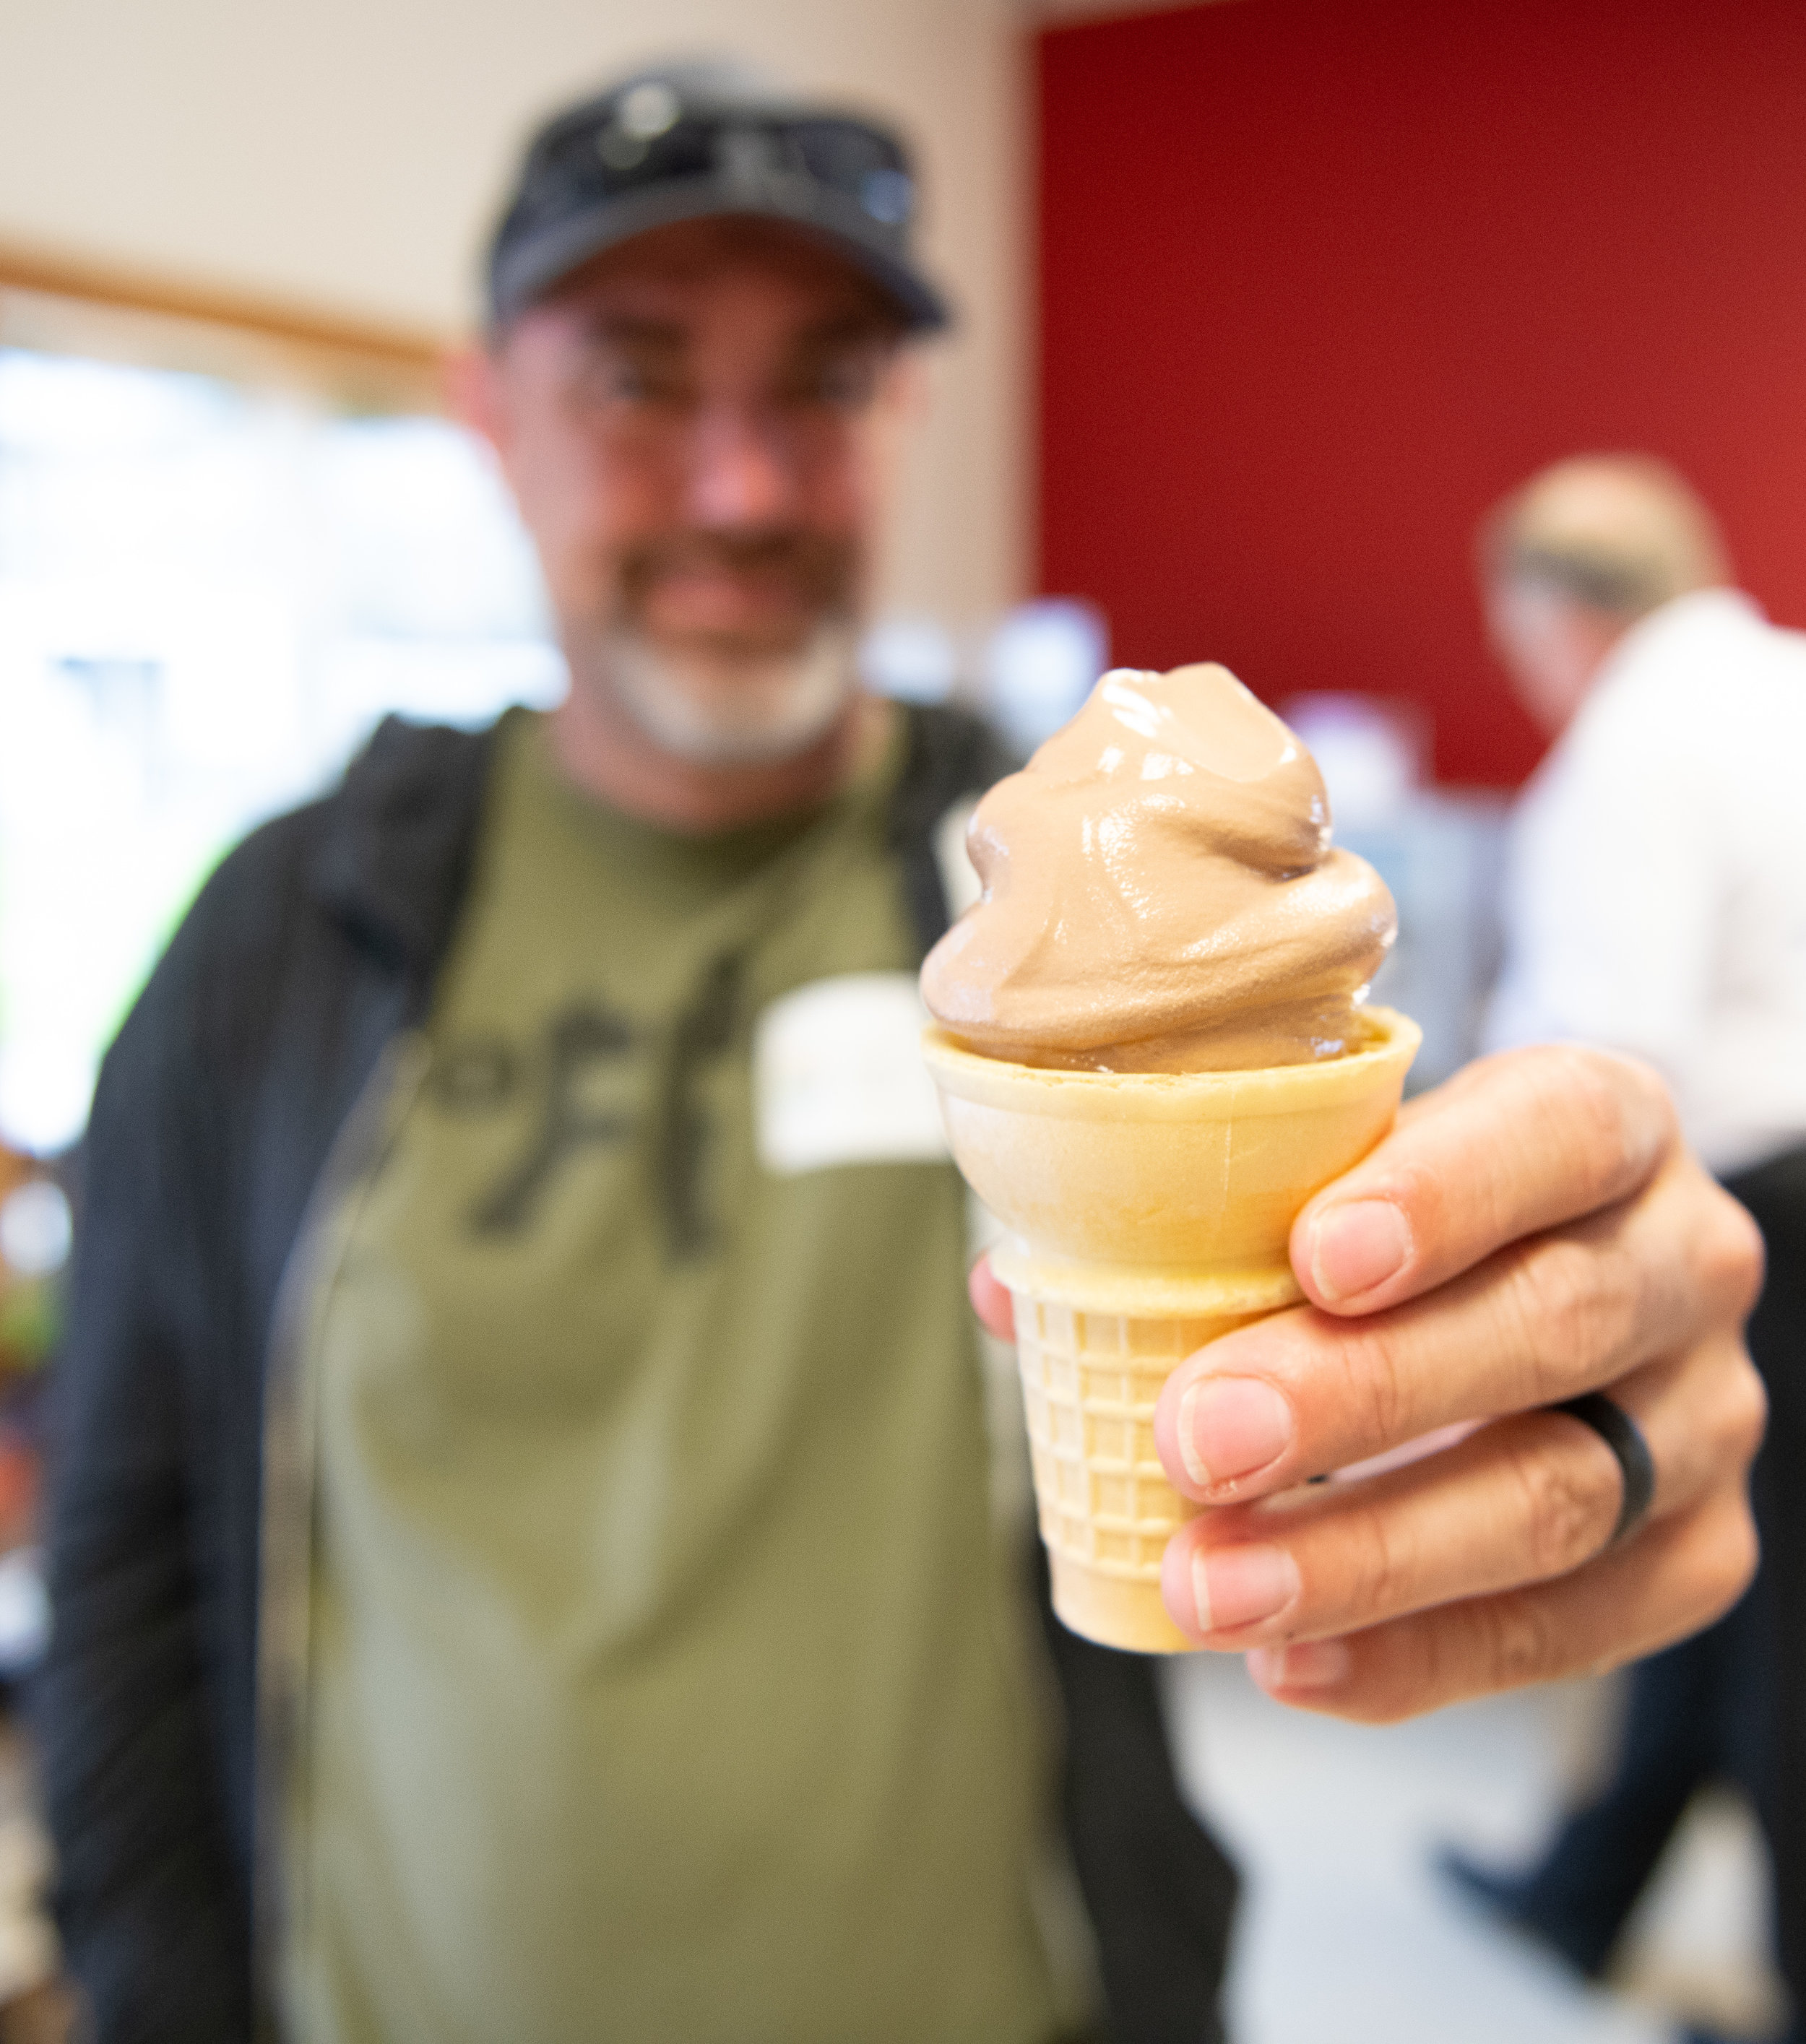 In 2013, Country View Dairy began making Premium Frozen Yogurt Soft Serve Mix. Their line of soft-serve frozen yogurt is available in several restaurants, colleges and schools. Photo credit: Joseph L. Murphy/Iowa Soybean Association